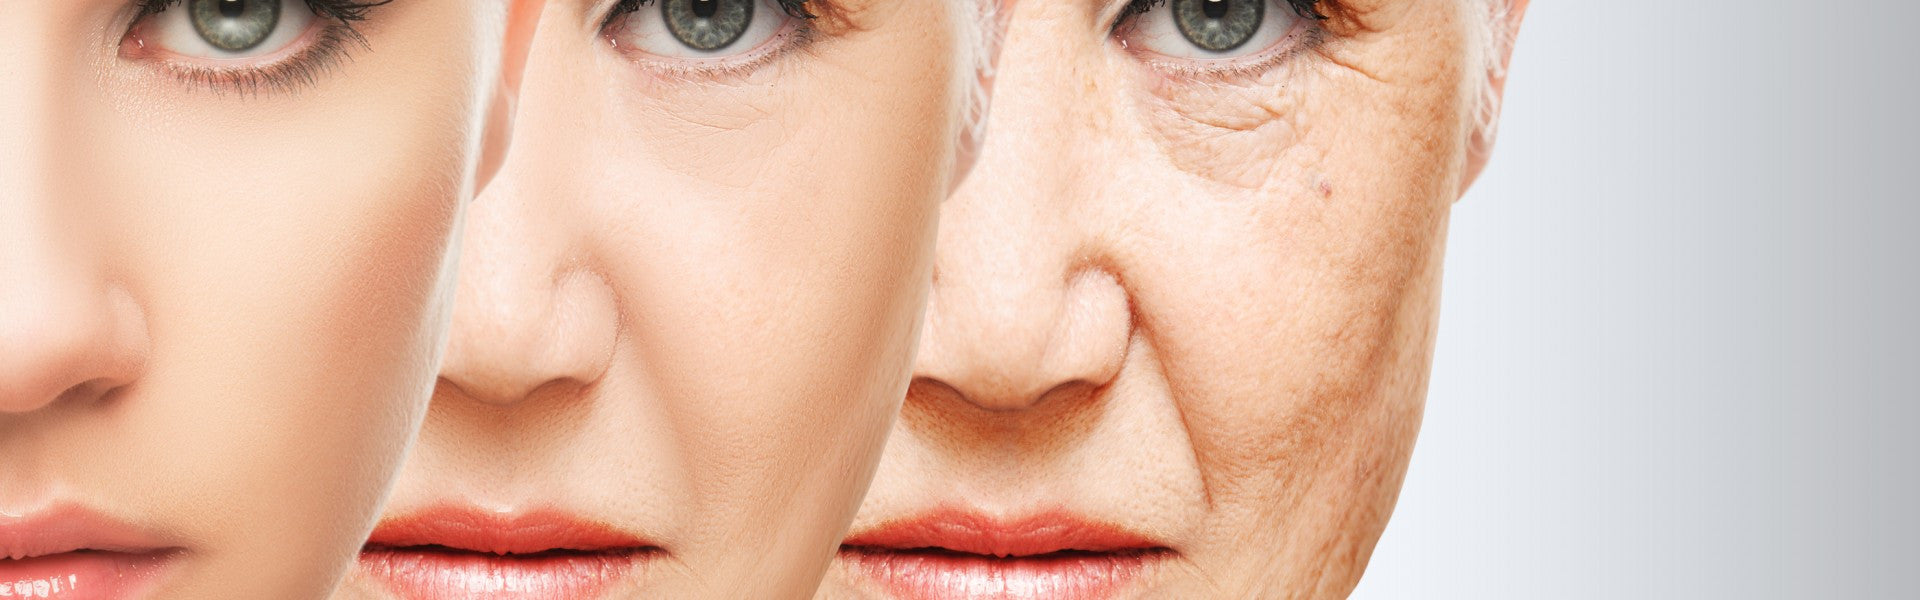 How and Why Does the Skin Age?